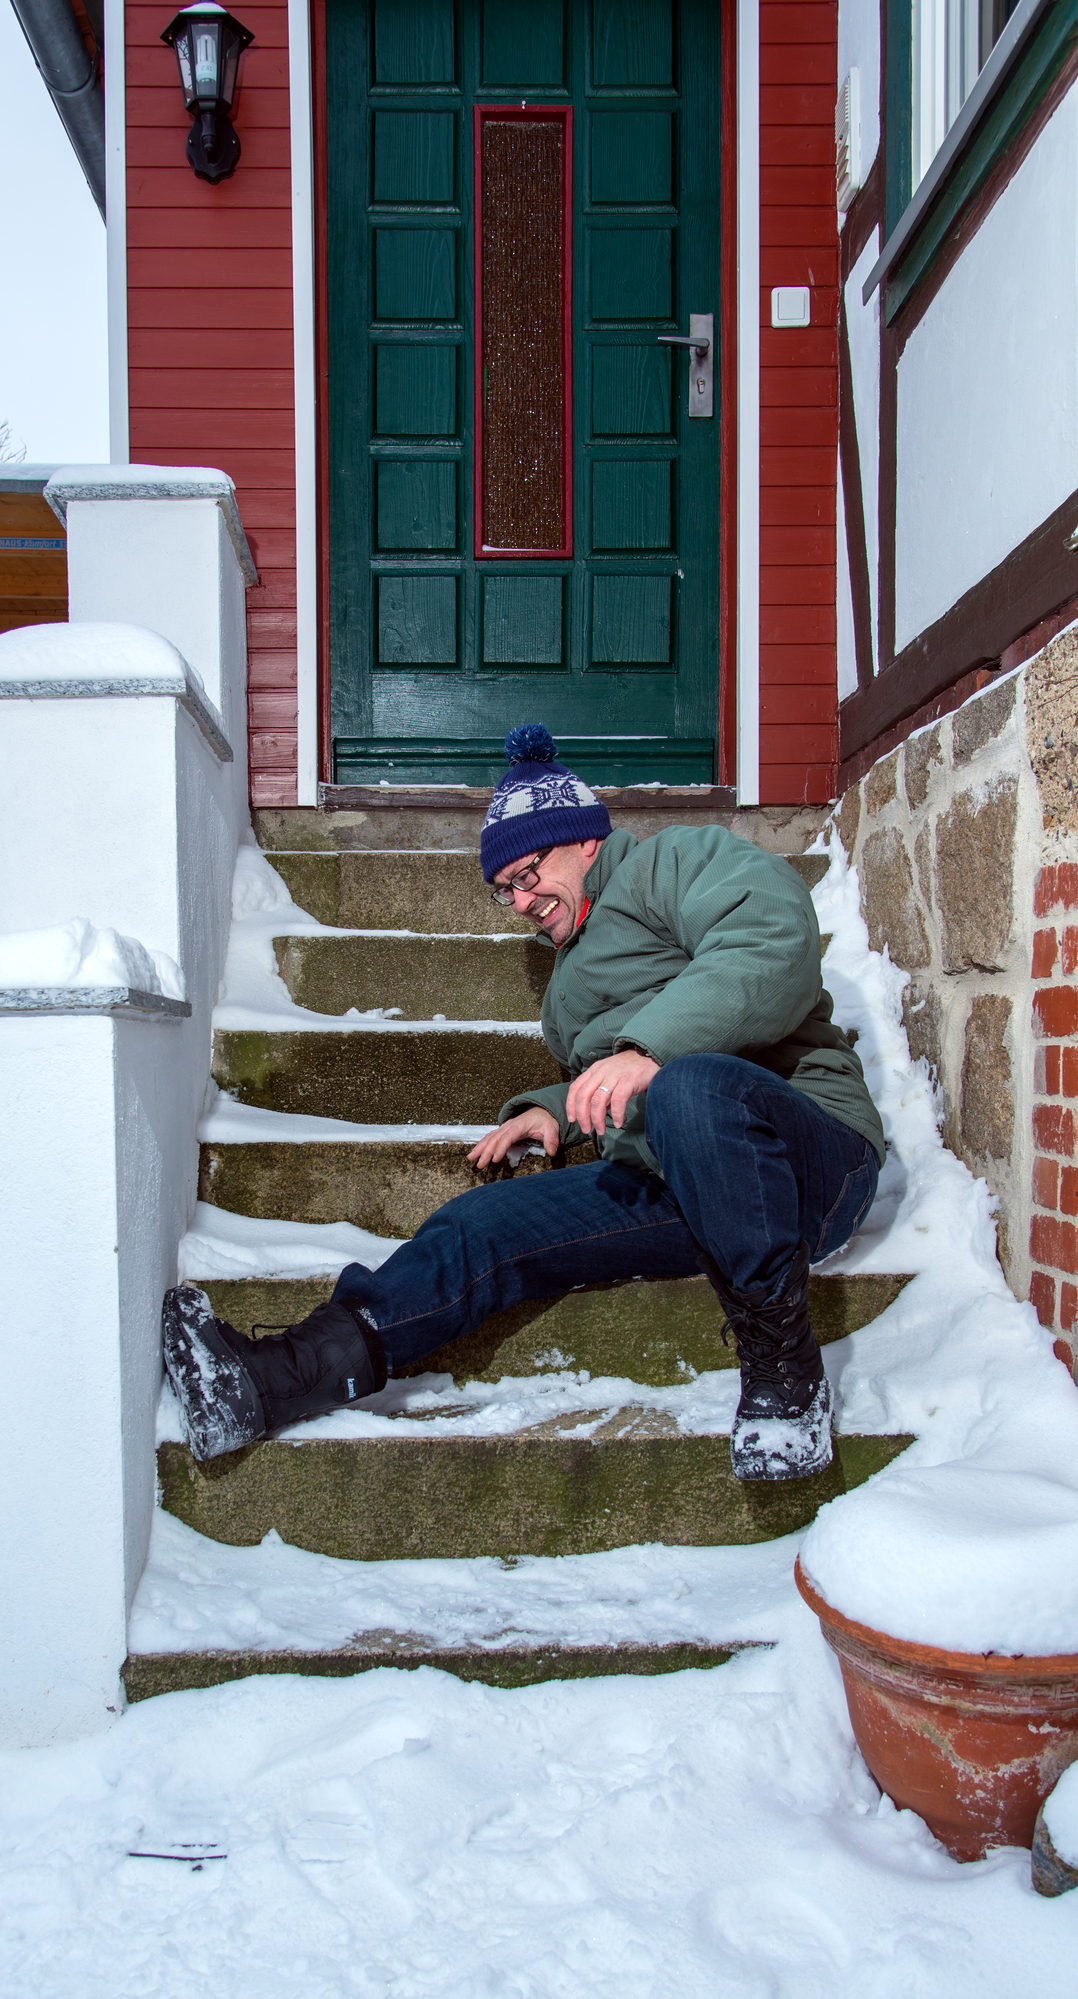 Man%20falling%20on%20snowy%20stairs%2C%2